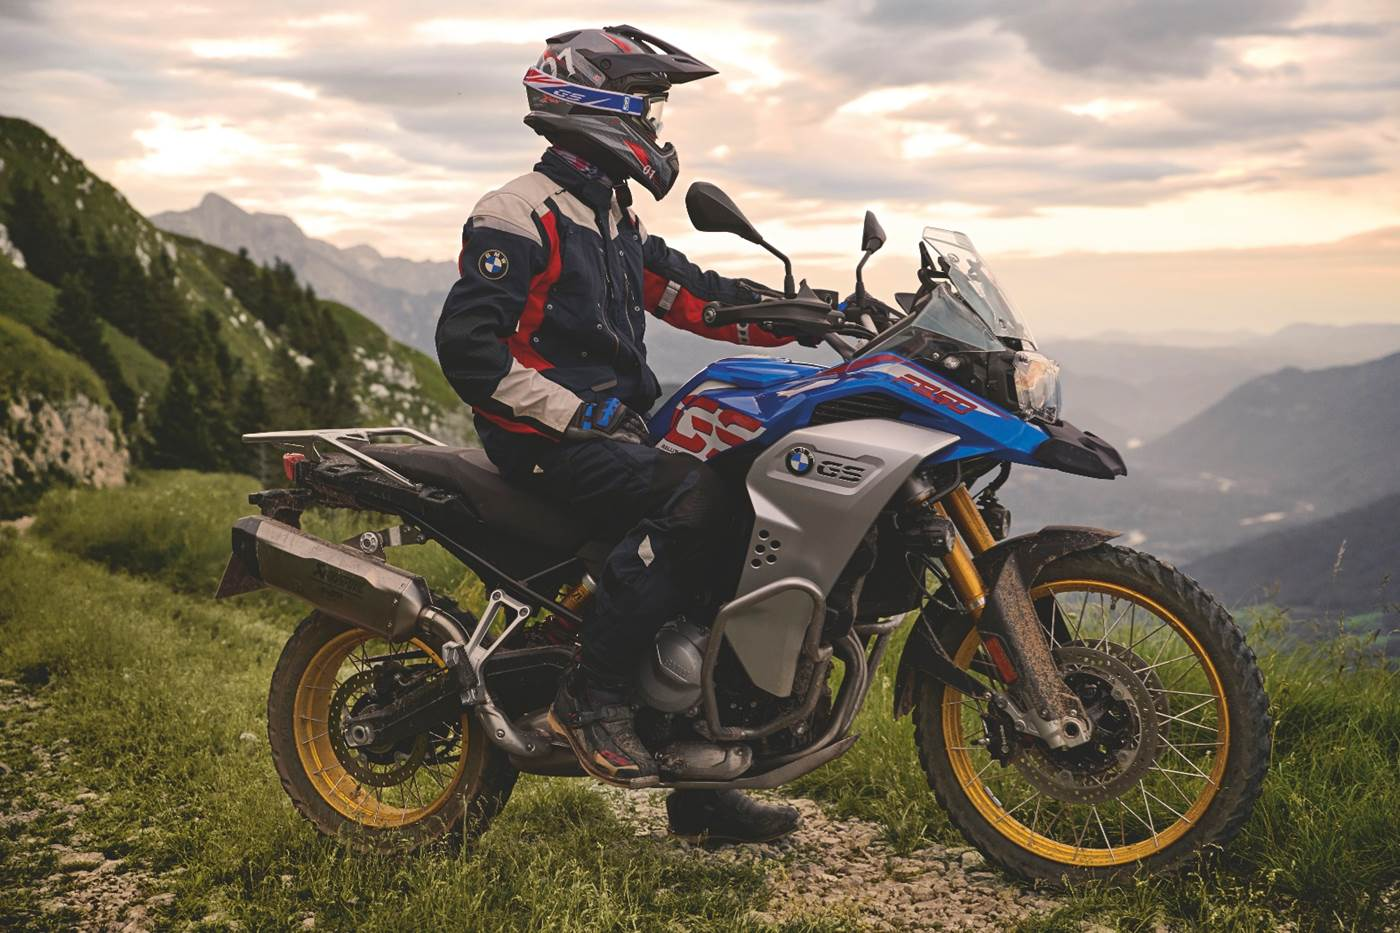 BMW MC F 850 GS Adventure